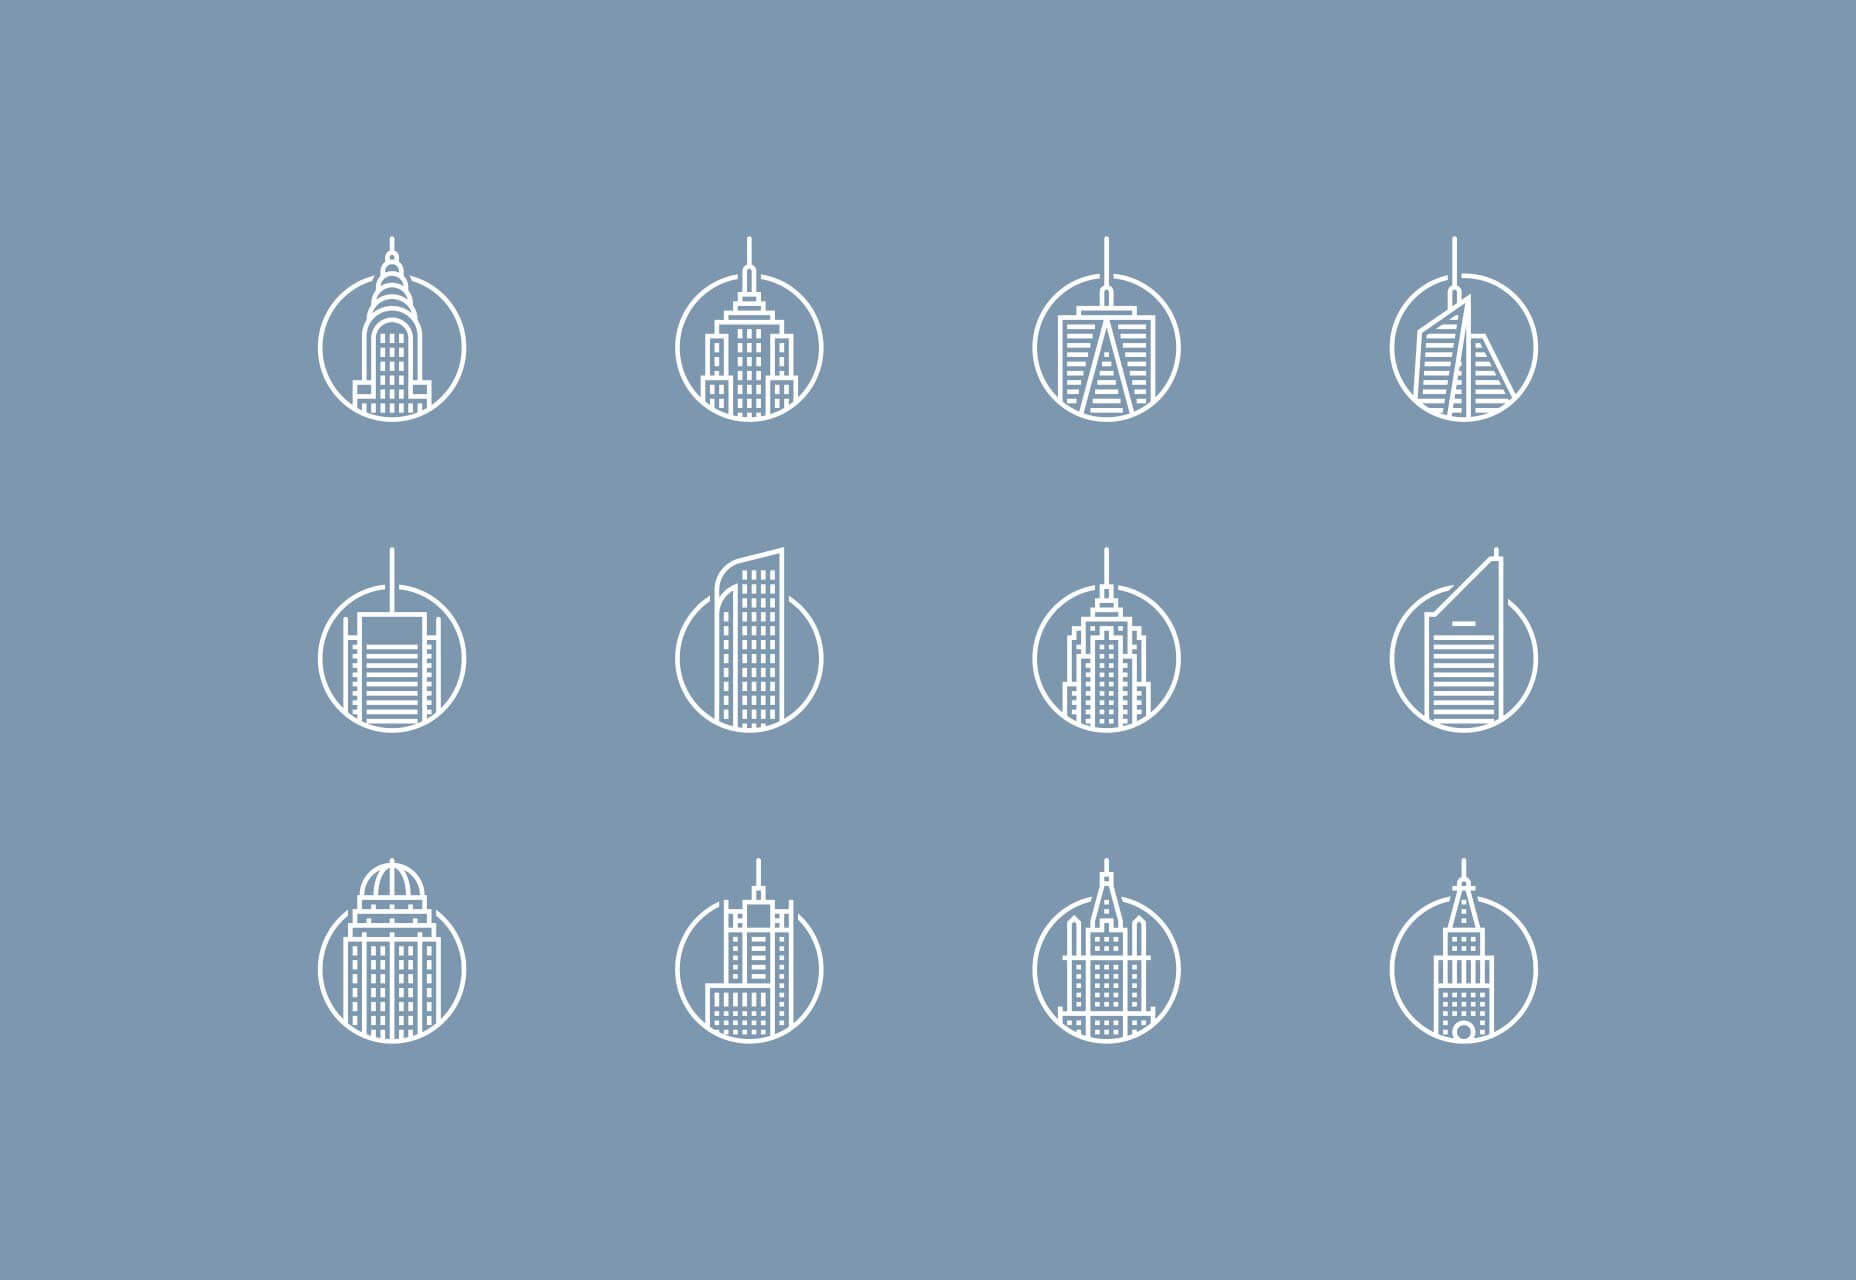 Download free new york building icons